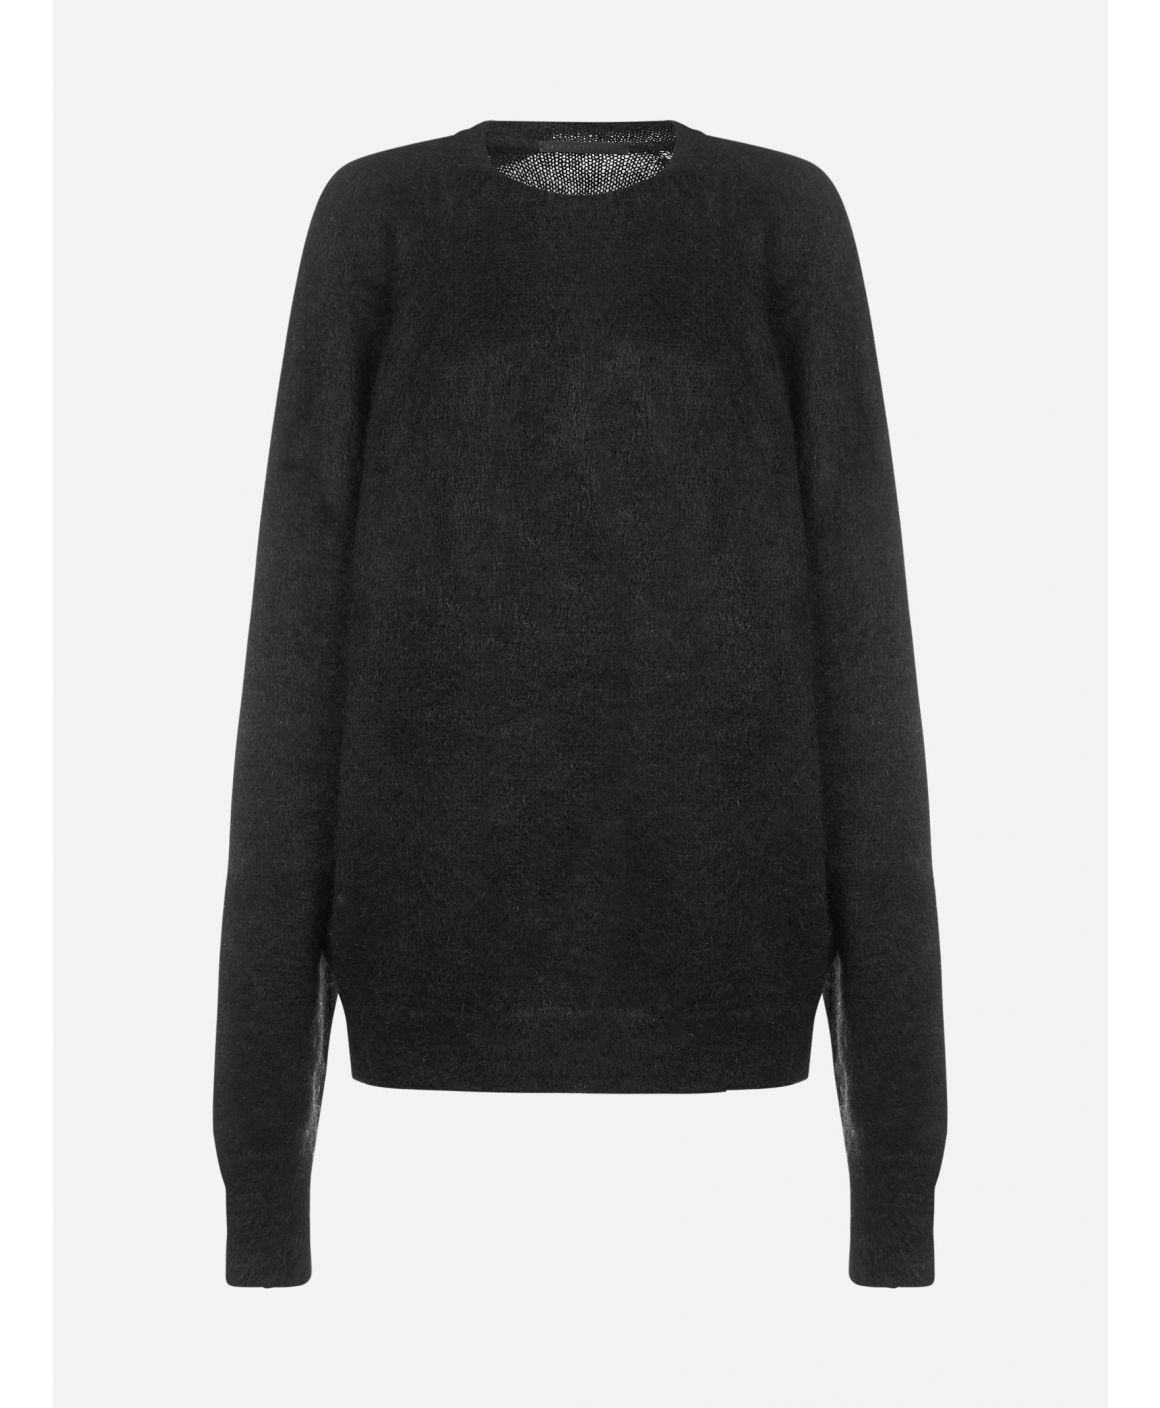 Merino wool oversized sweater